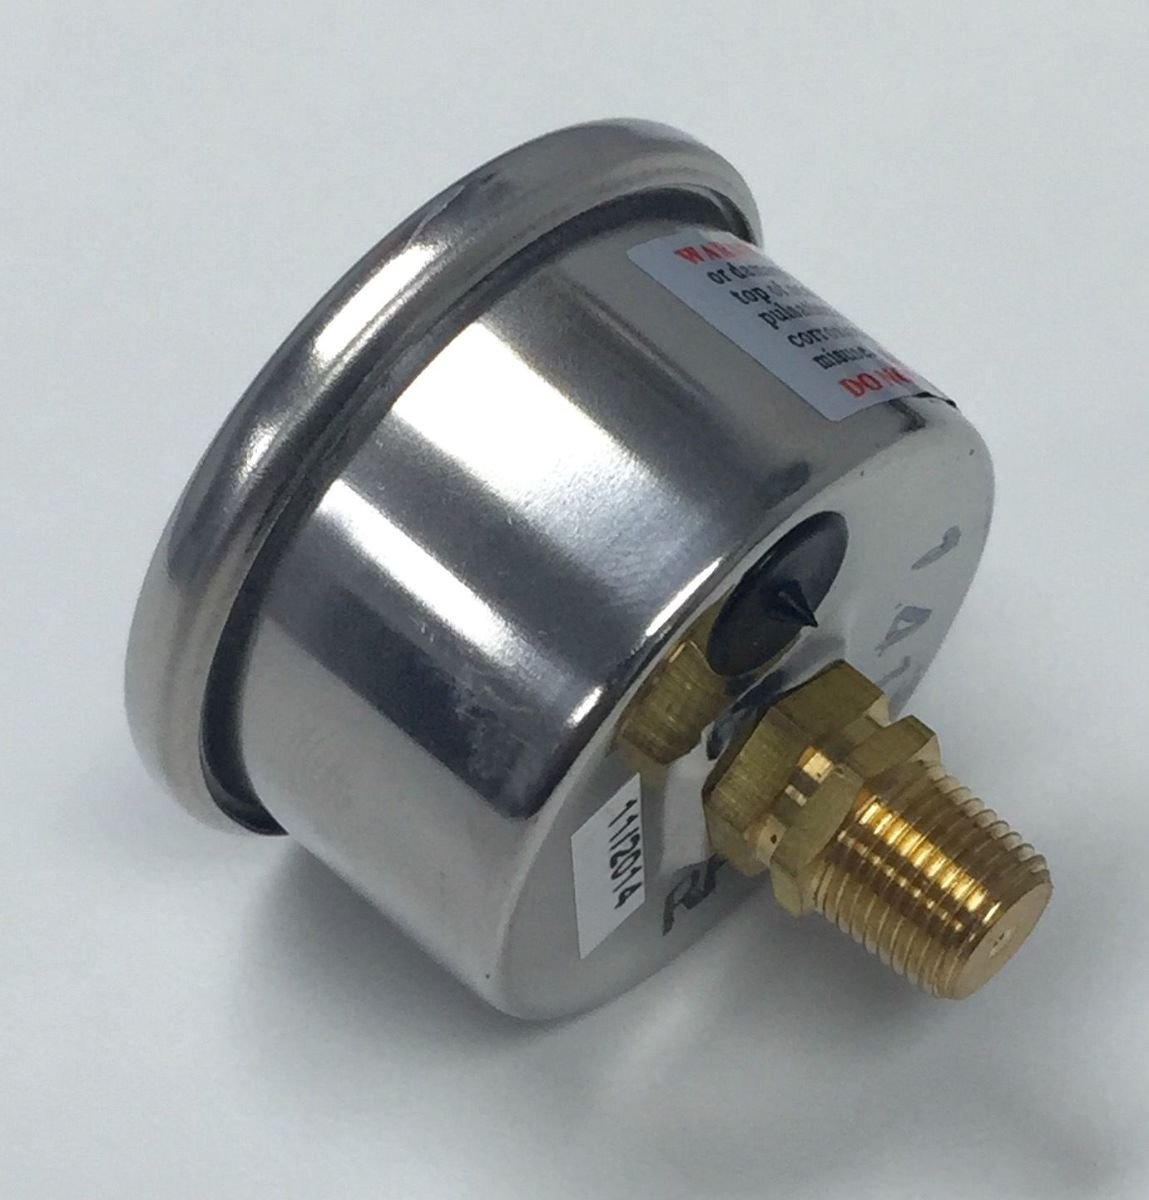 Pirate Mfg Aluminum Holley 4150 Double Pumper Fuel Line Log Clear Anodized /& White Oil Gauge